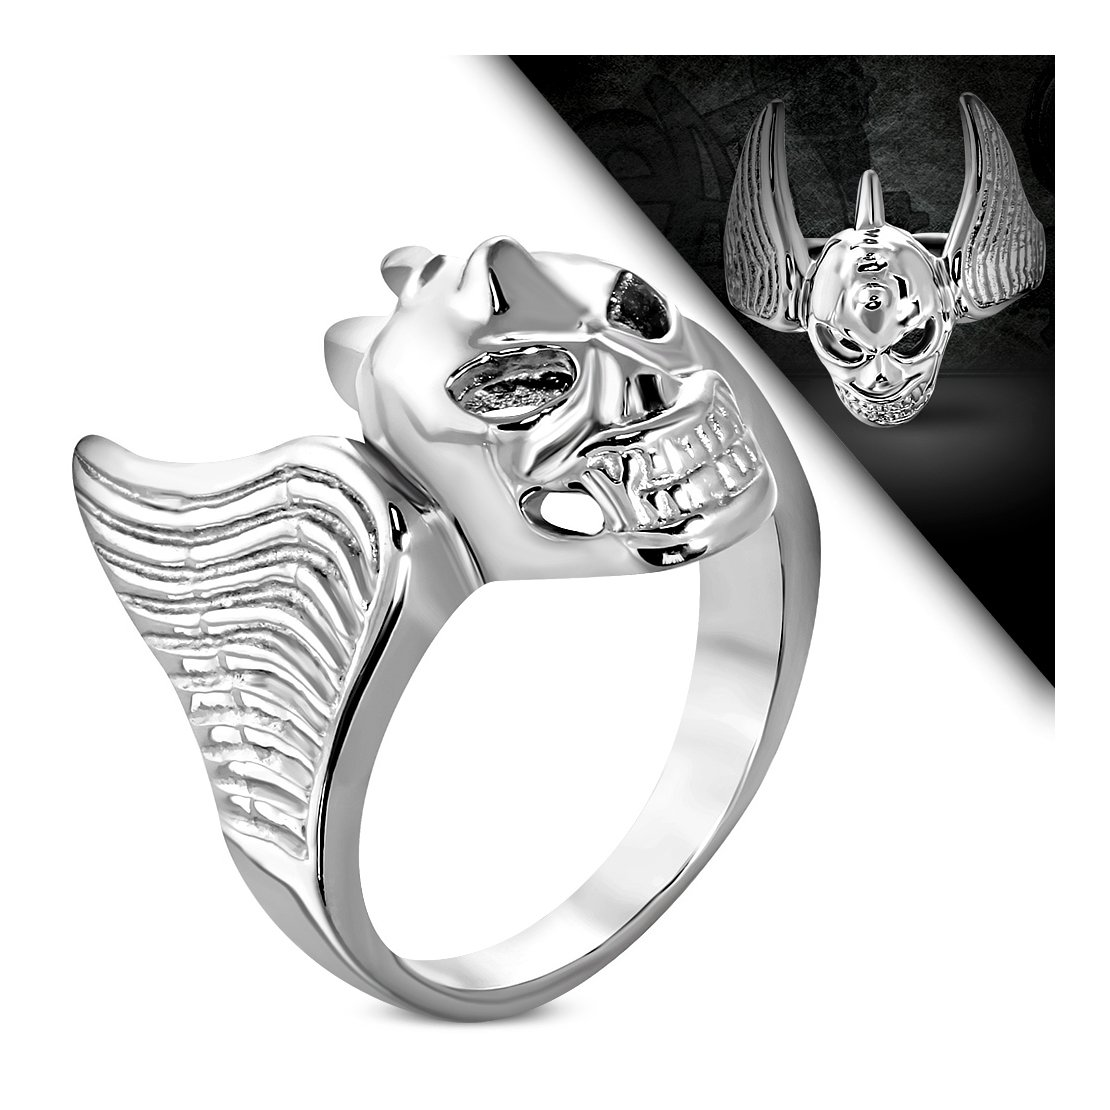 Stainless Steel Bat Wing Vampire Skull Biker Ring